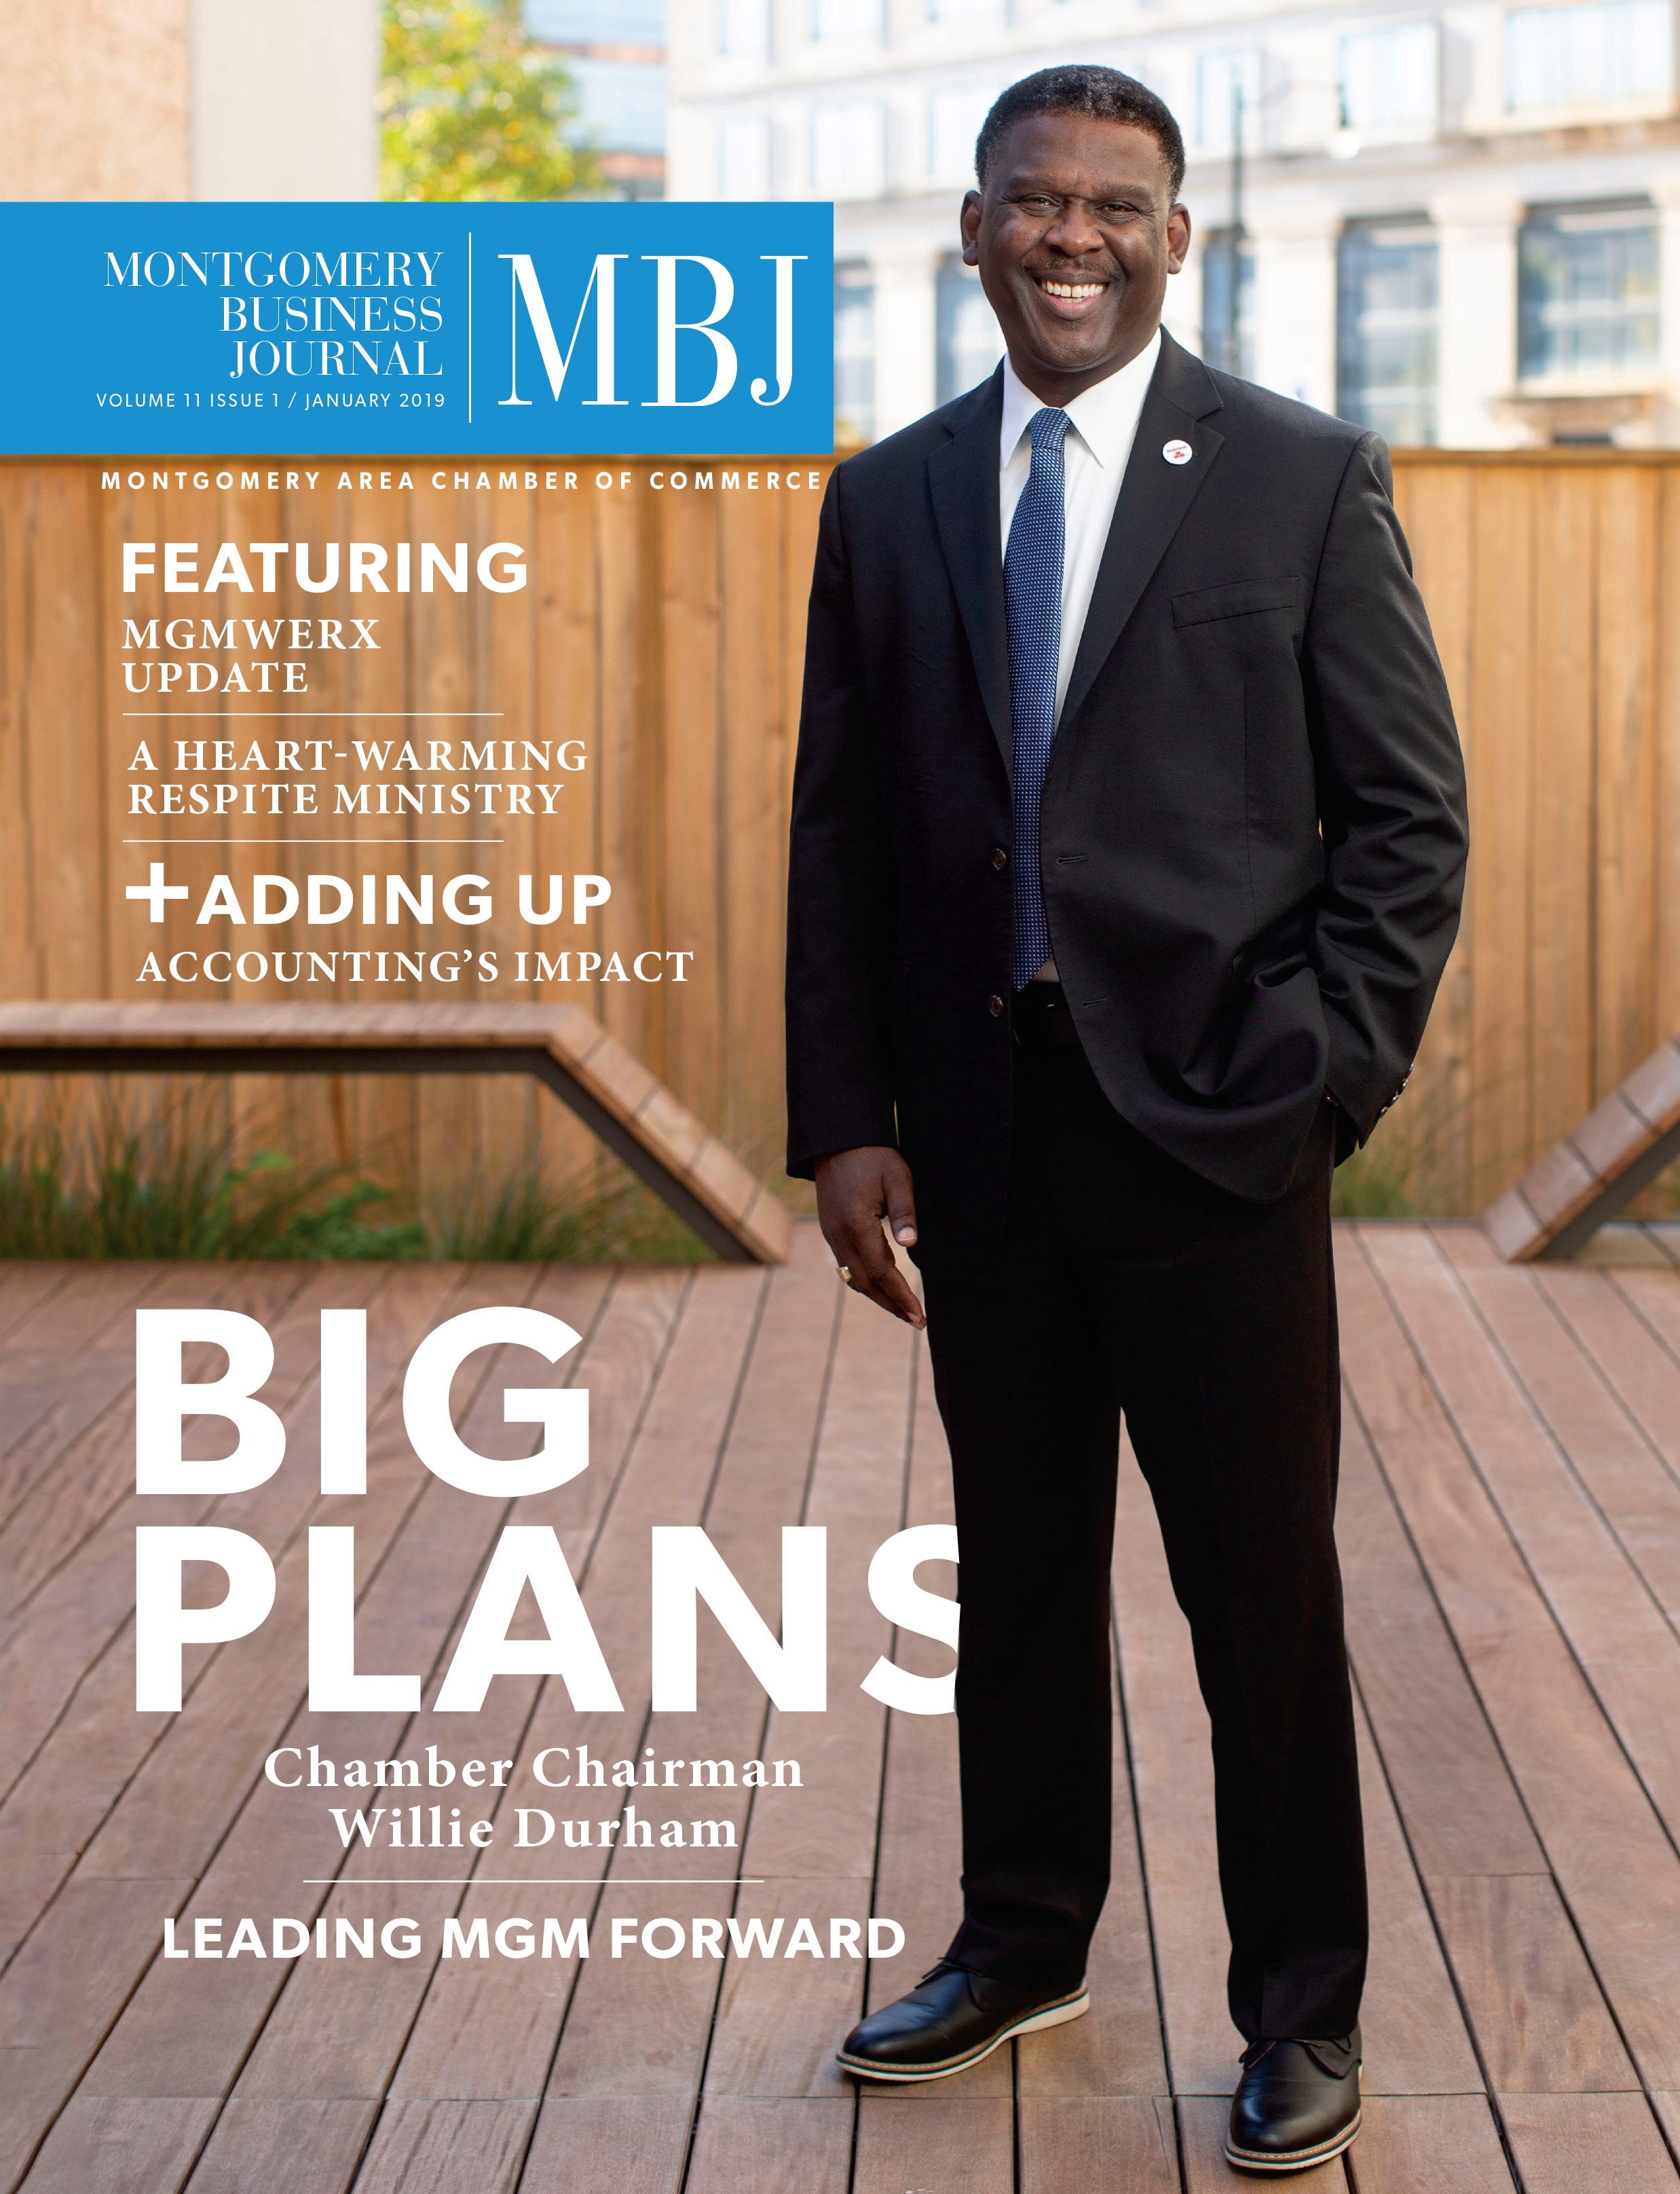 January 2019 Montgomery Business Journal, Montgomery Area Chamber of Commerce, MGMChamber, Montgomery Chamber, Willie Durham, City of Montgomery, State Farm Insurance, Chamber Chairman